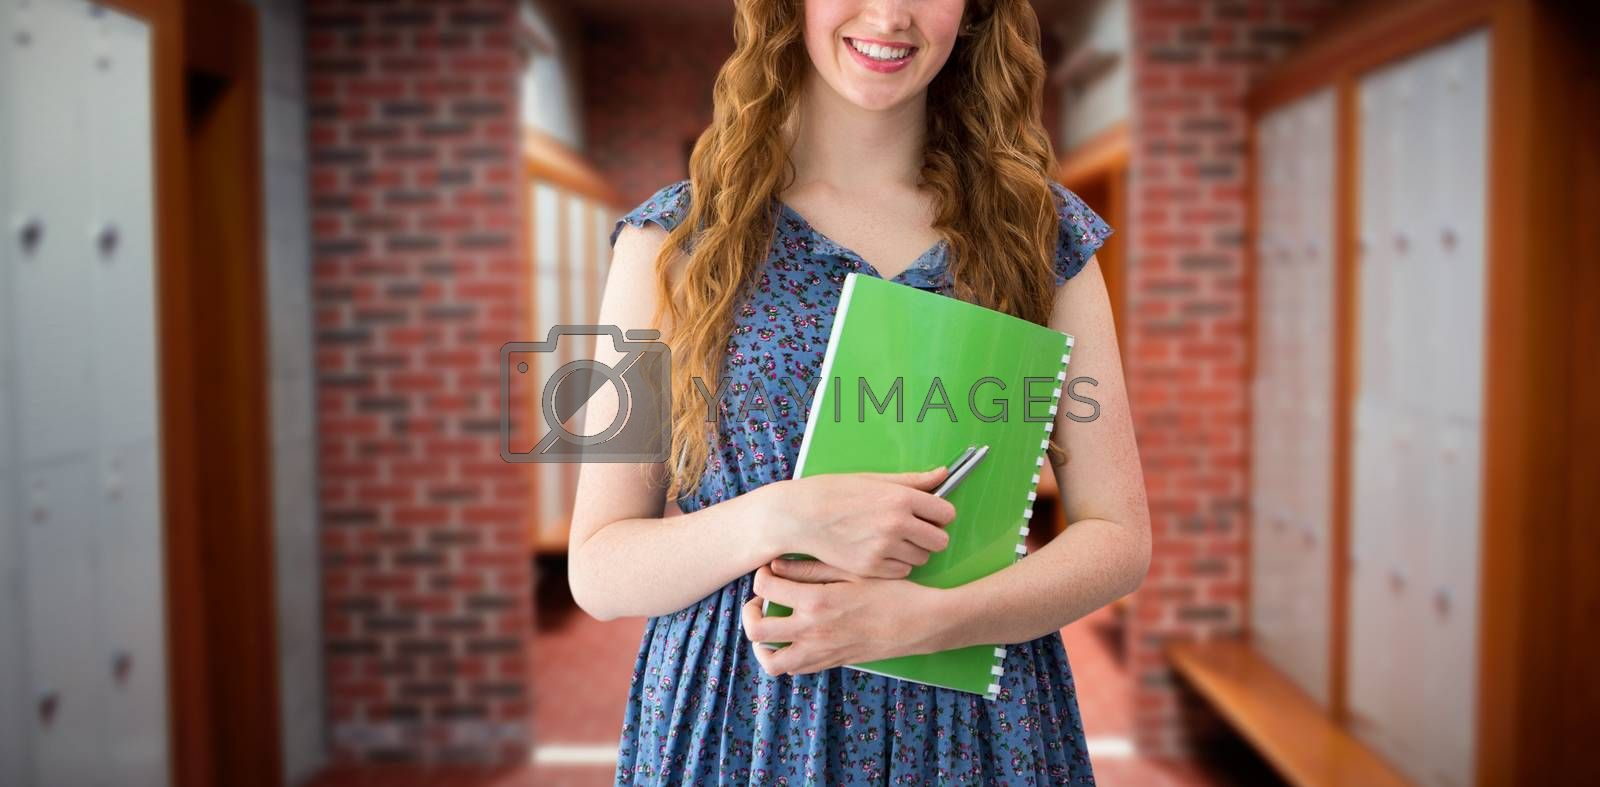 Composite image of happy student by Wavebreakmedia